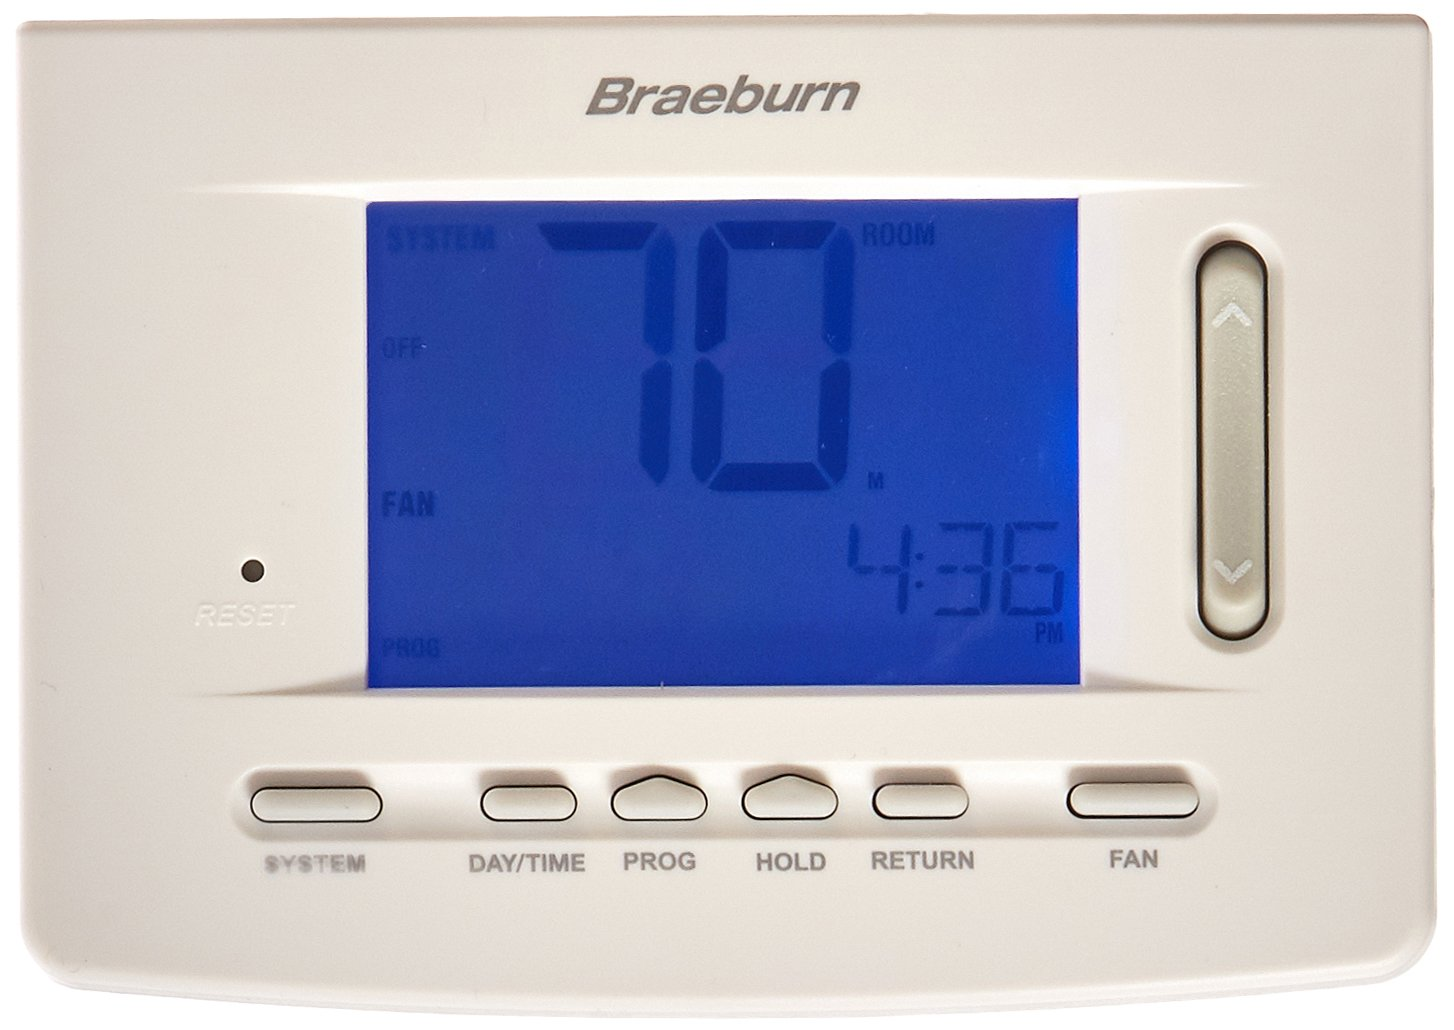 BRAEBURN 5020 Thermostat, Universal 7, 5-2 Day or Non-Programmable, 1H/1C